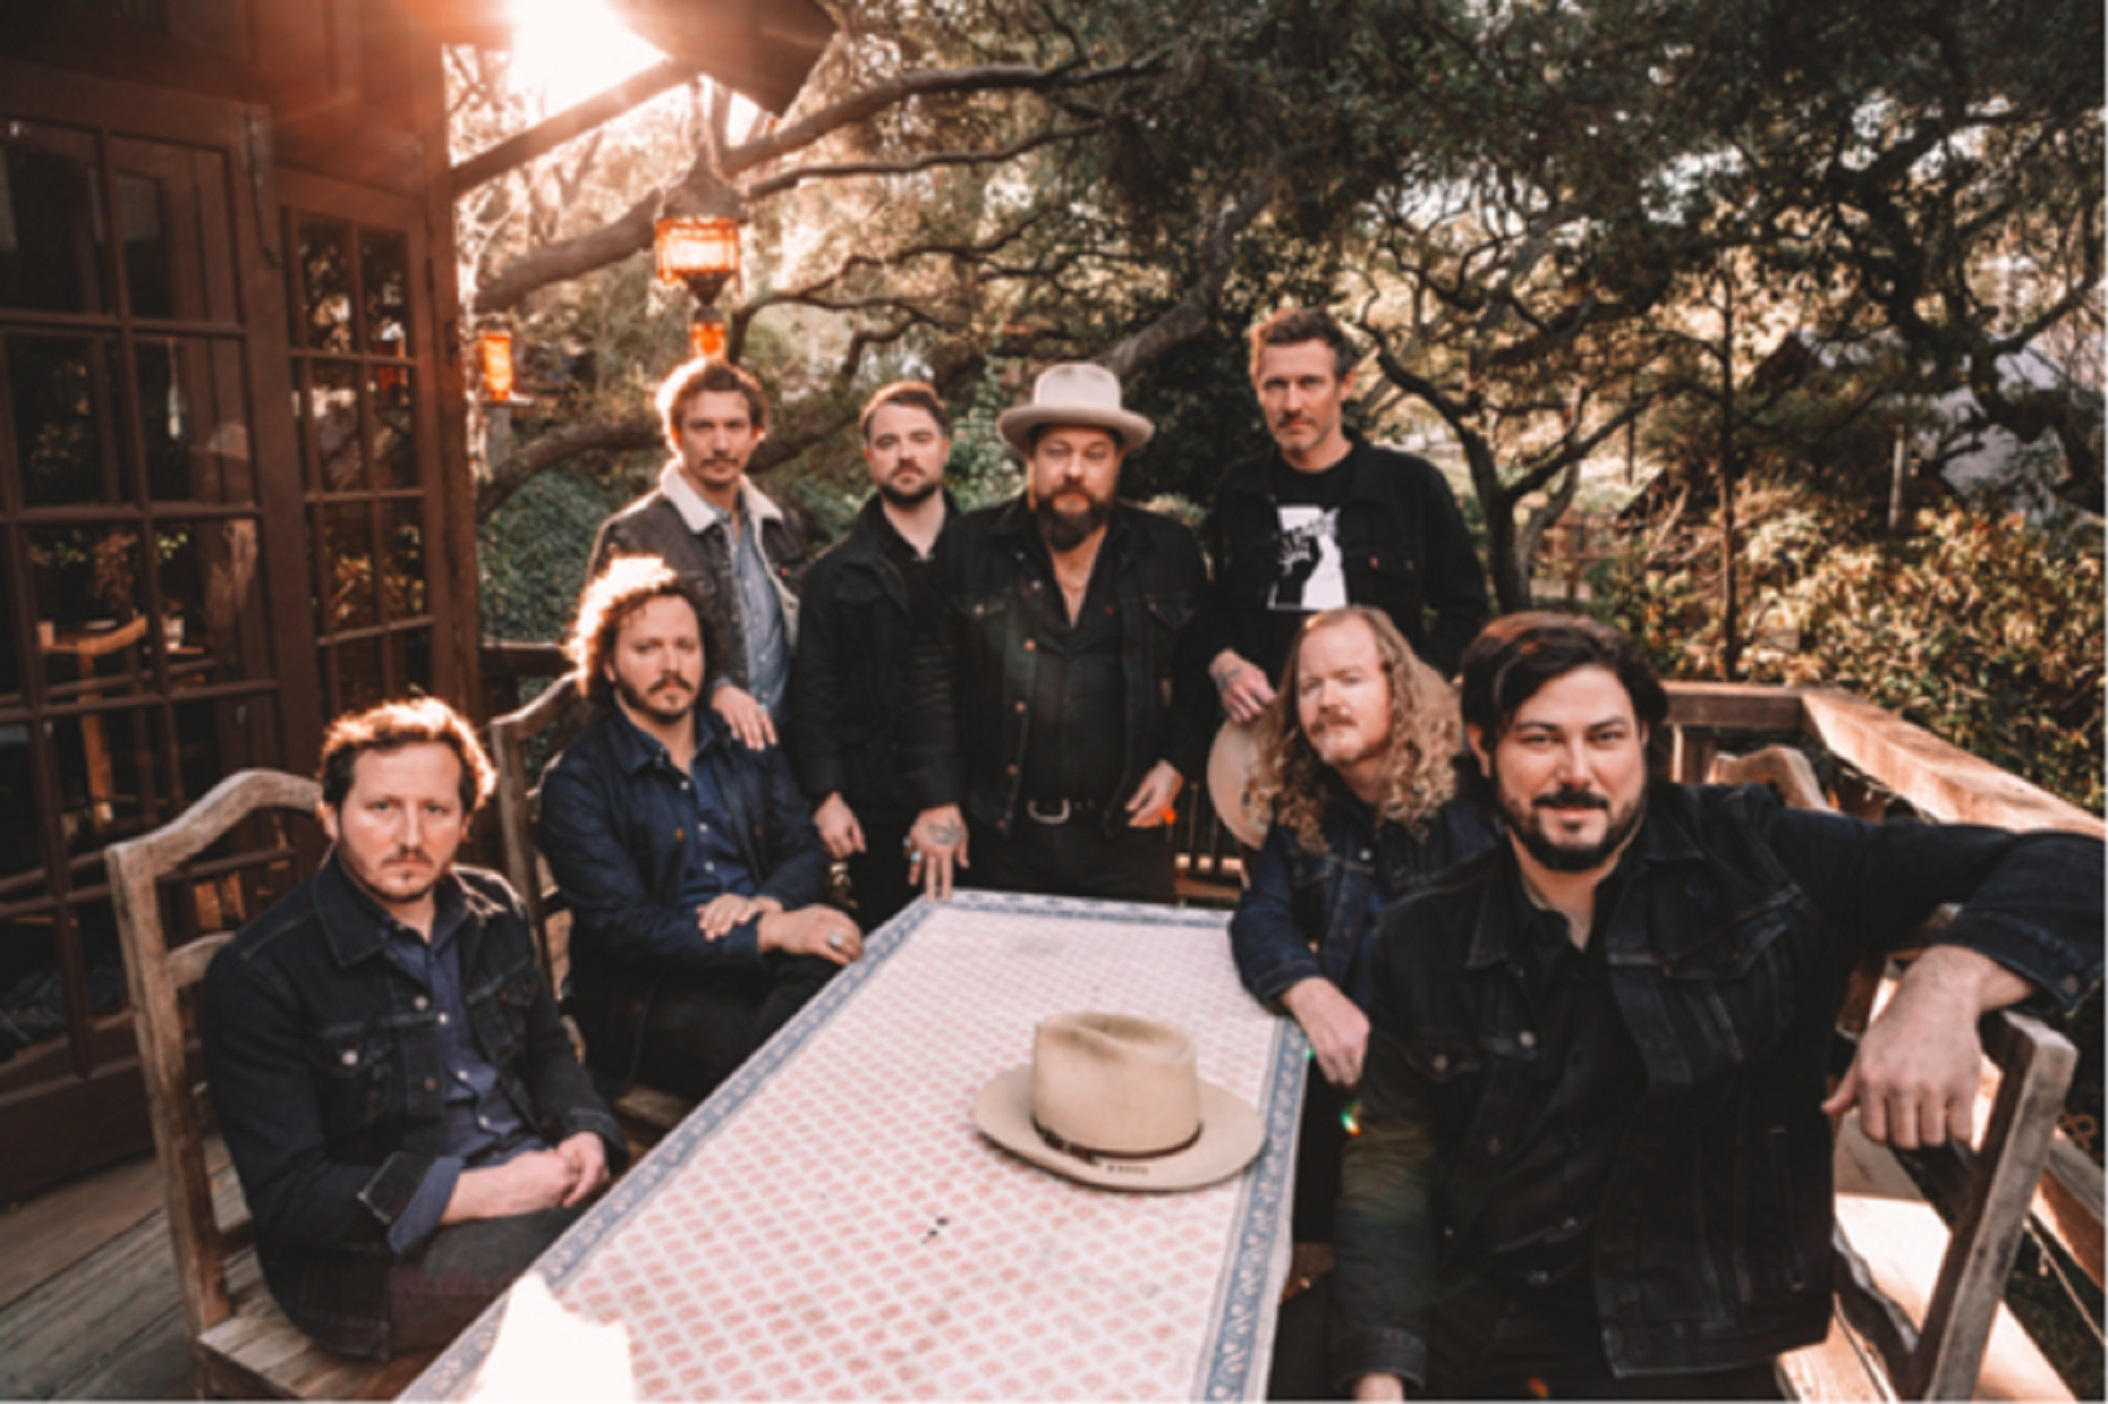 Nathaniel Rateliff & The Night Sweats to open for The Rolling Stones in Denver